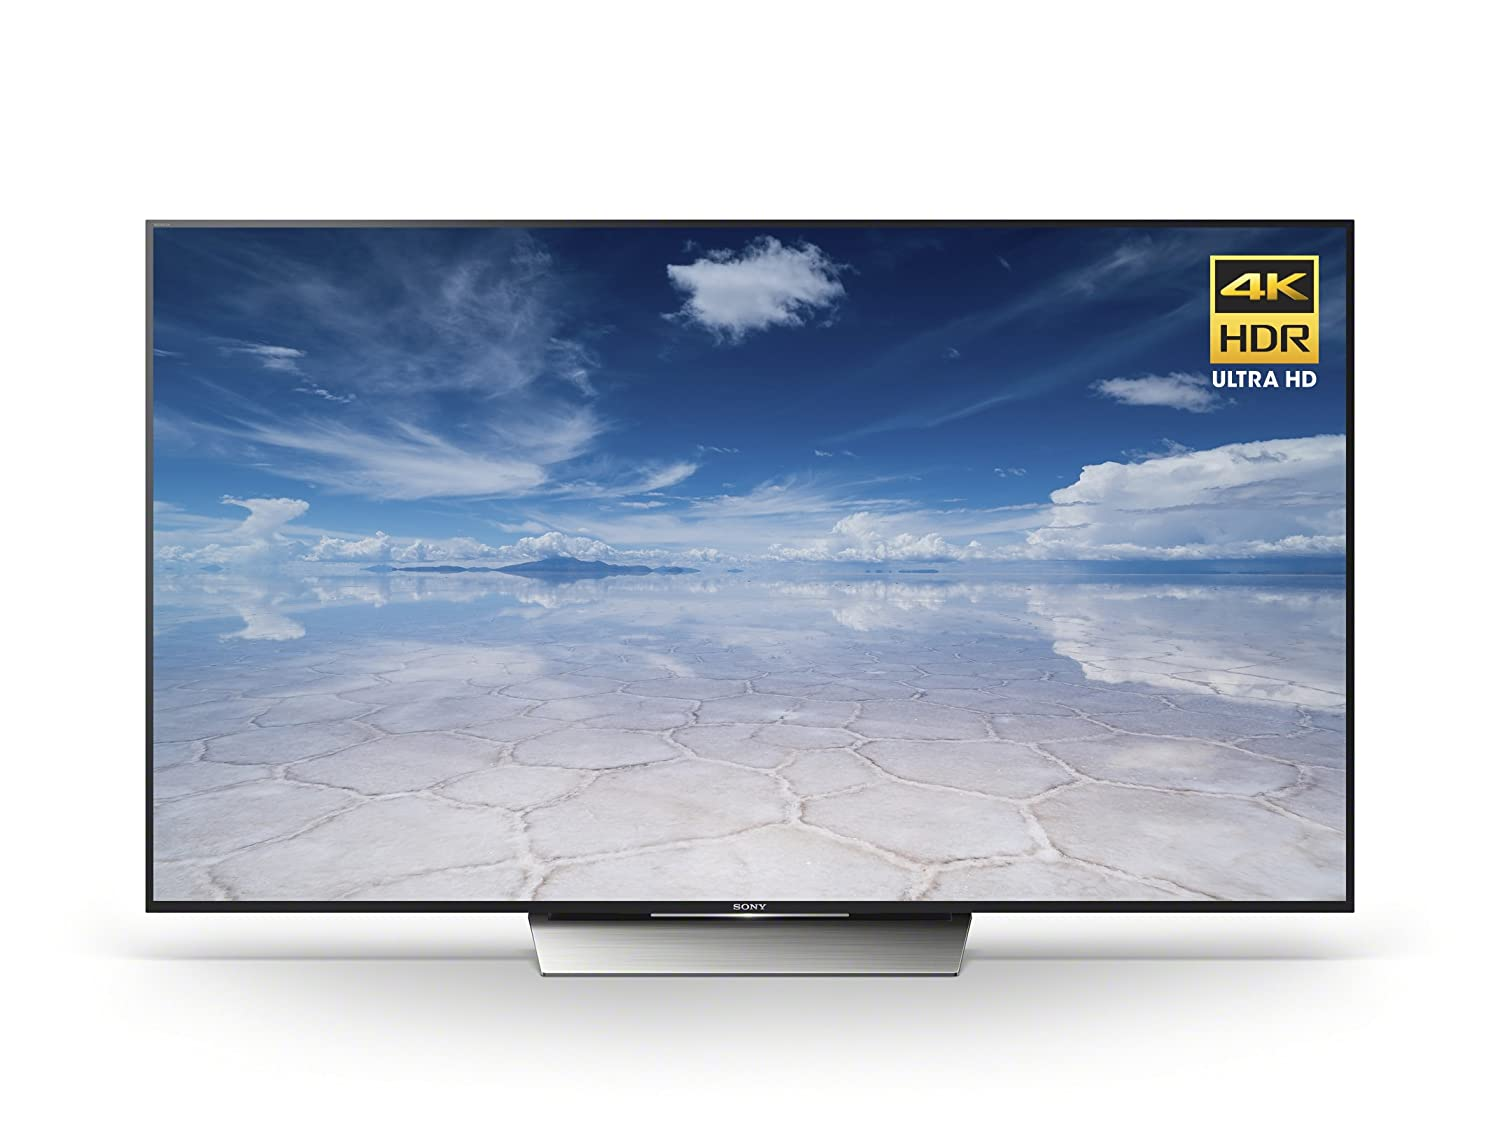 Sony XBR55X850D 55-Inch 4K HDR Ultra HD TV (2016 model)